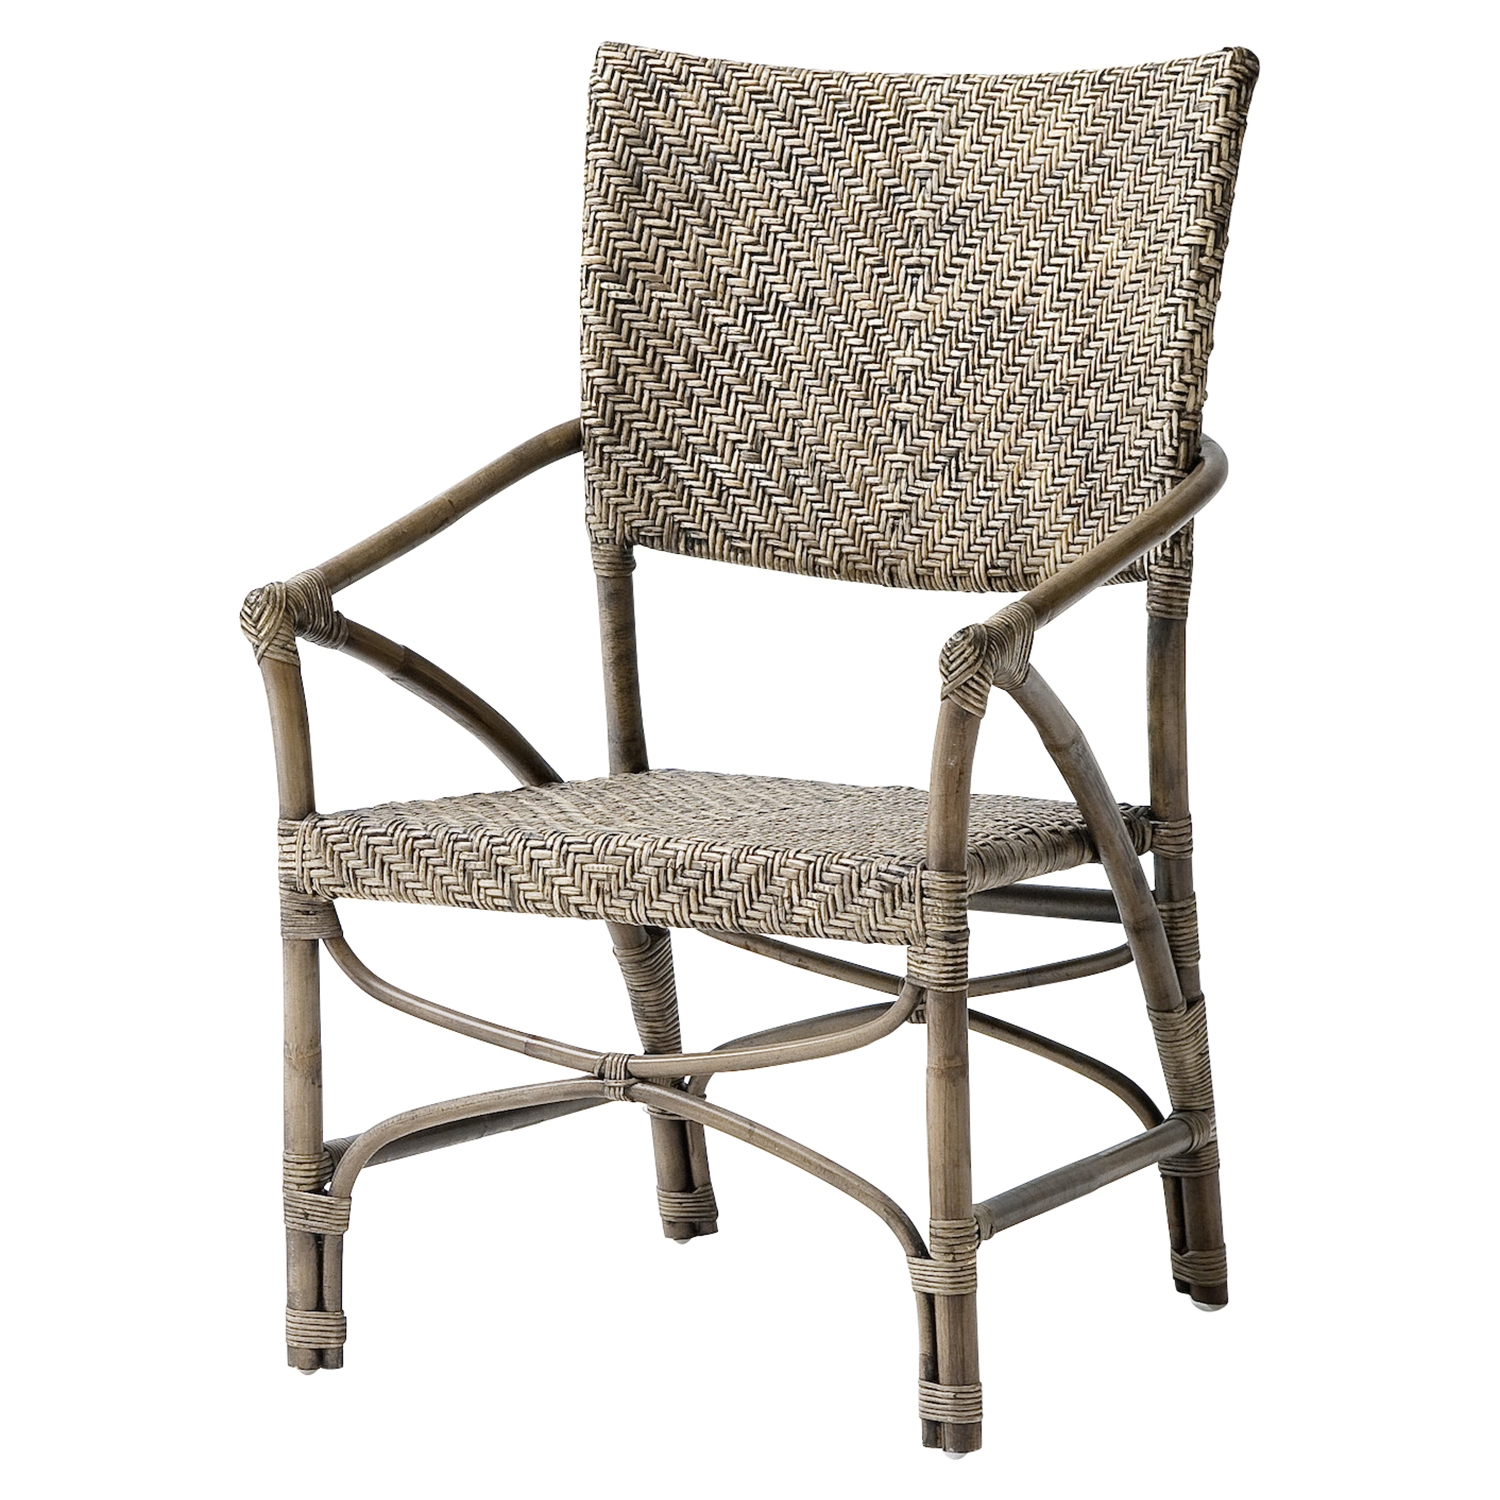 Wickerworks Jester Chair - Natural Rustic (Set of 2) - NSOLO-CR48